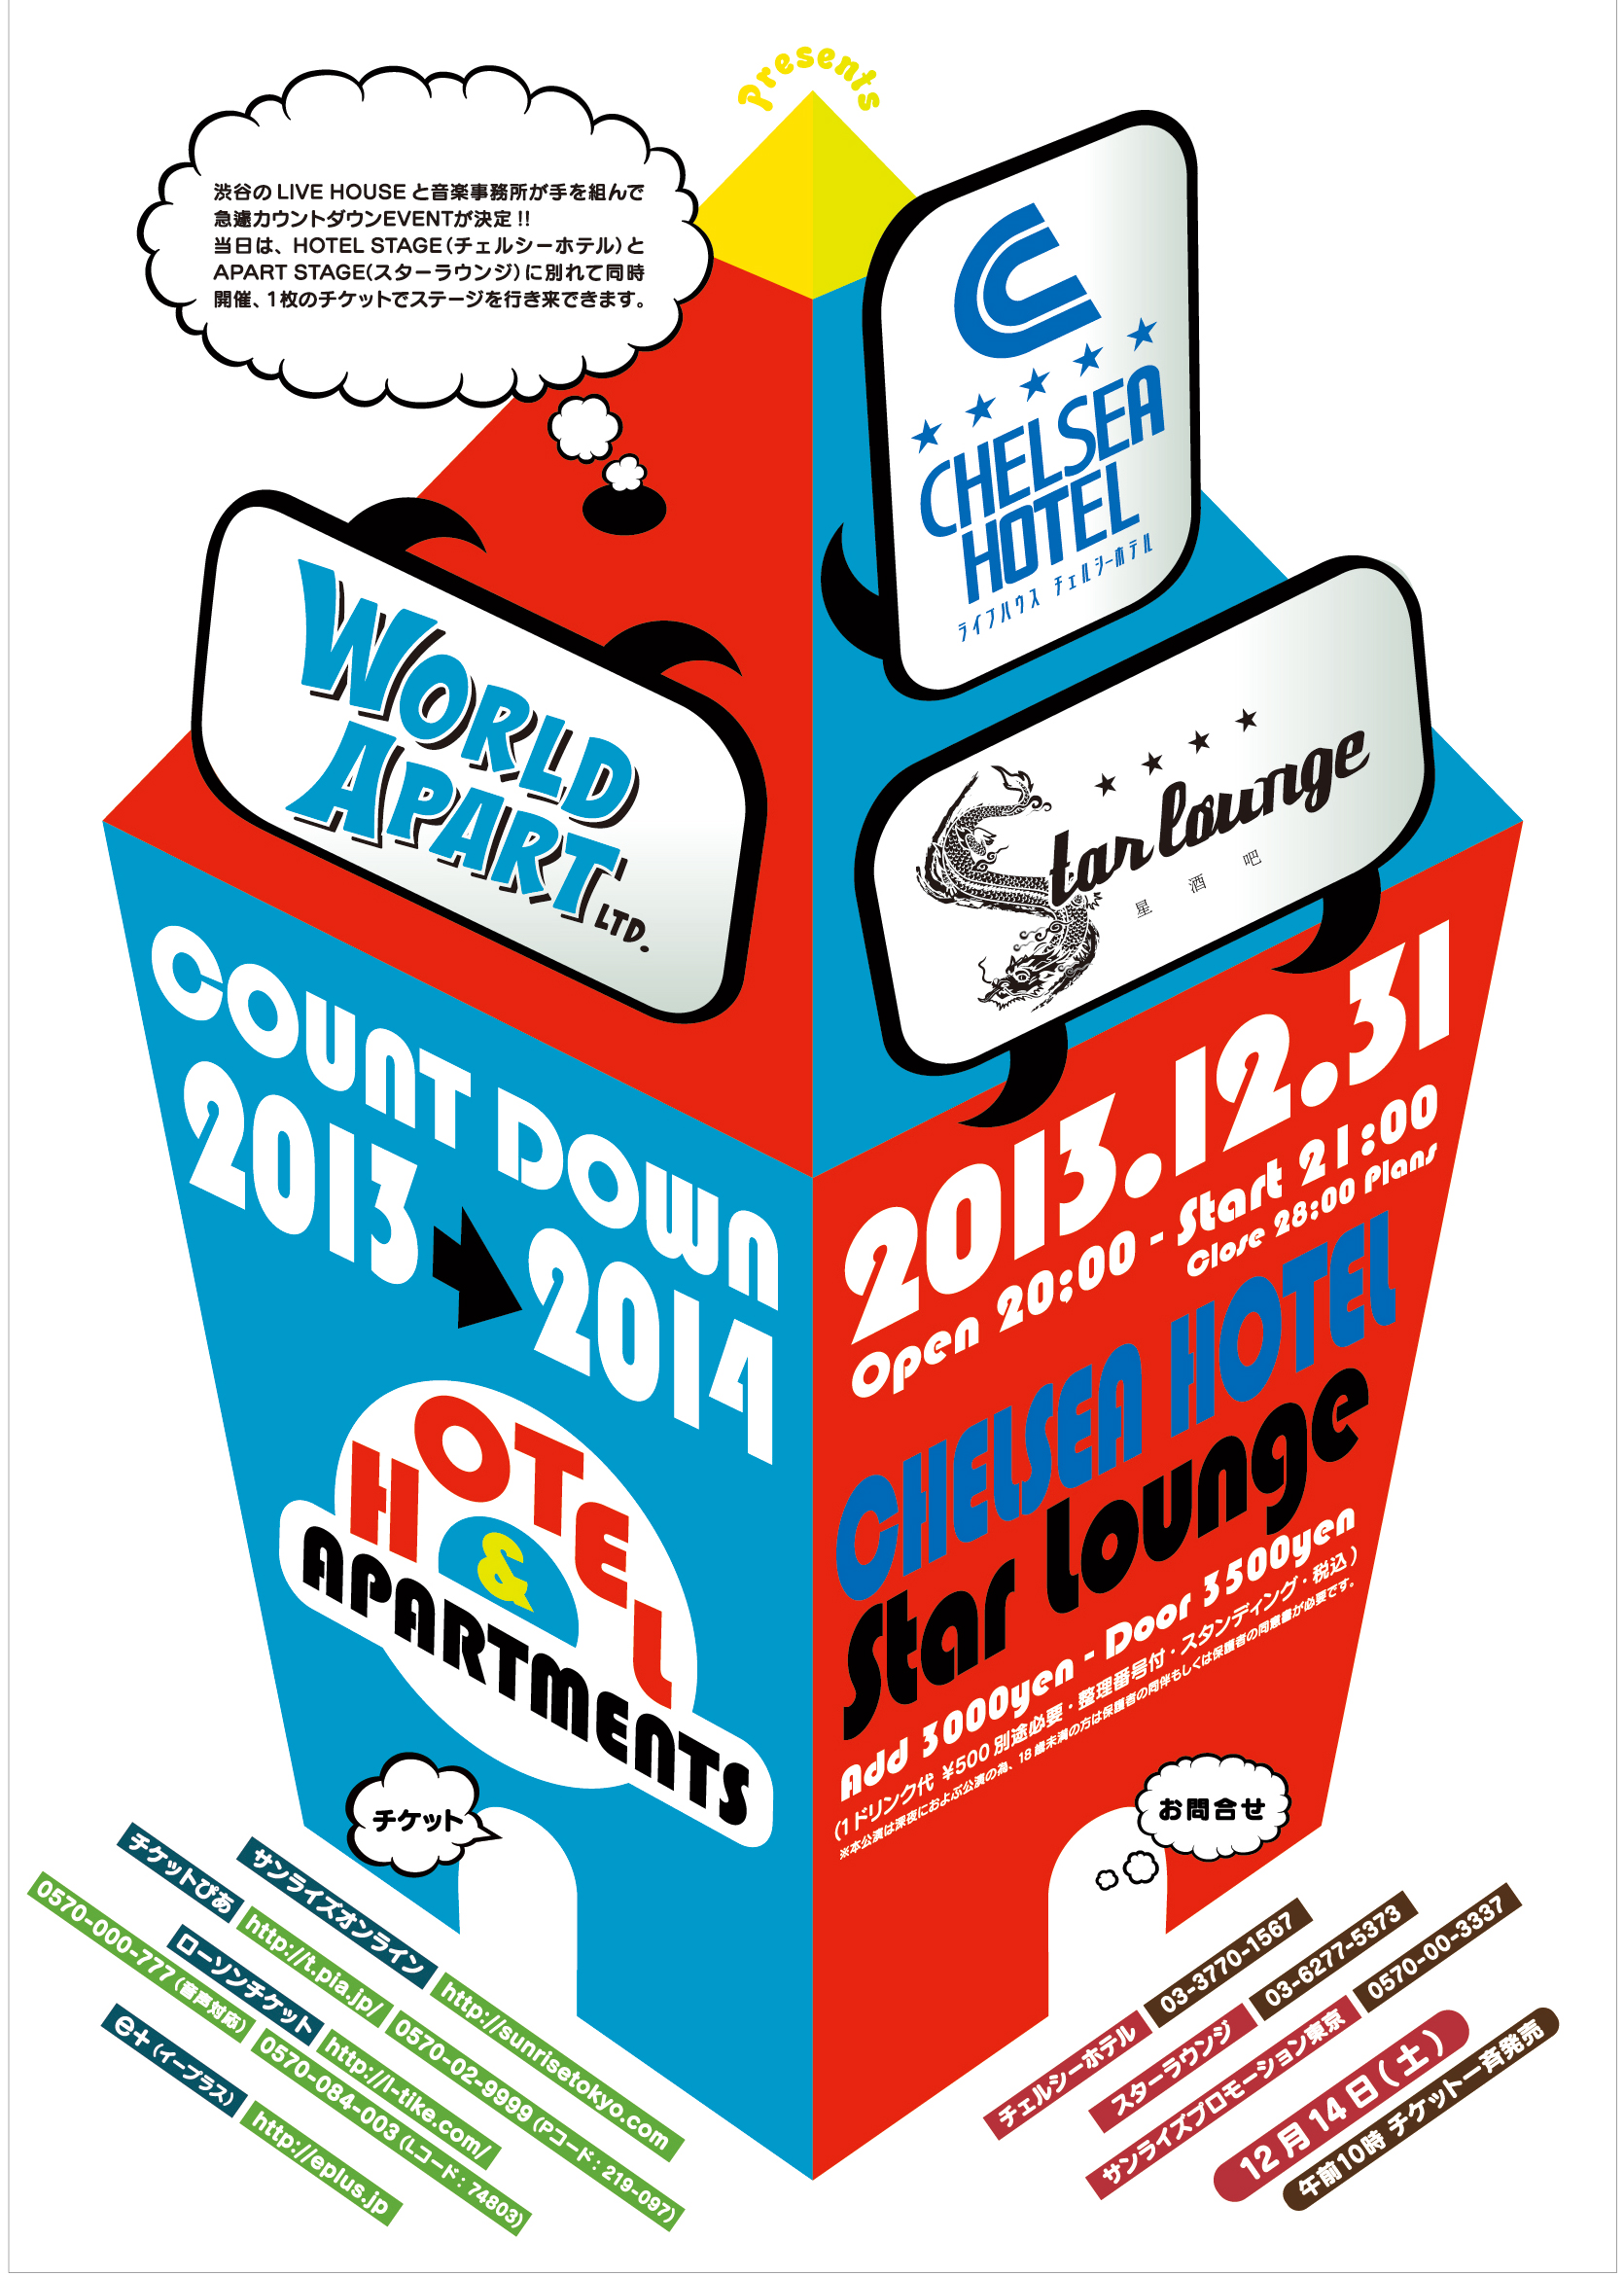 『COUNT DOWN Hotel & Apartments 2013→2014』